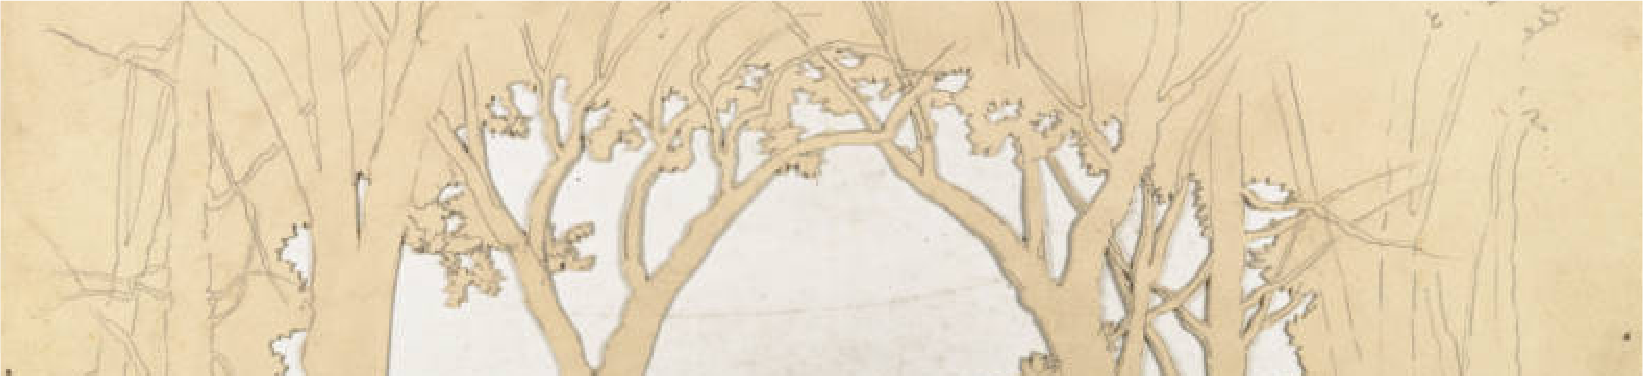 Sketch of a wood drop. Part of the Twin City Scenic Company Collection, University of Minnesota Performing Arts Archives.